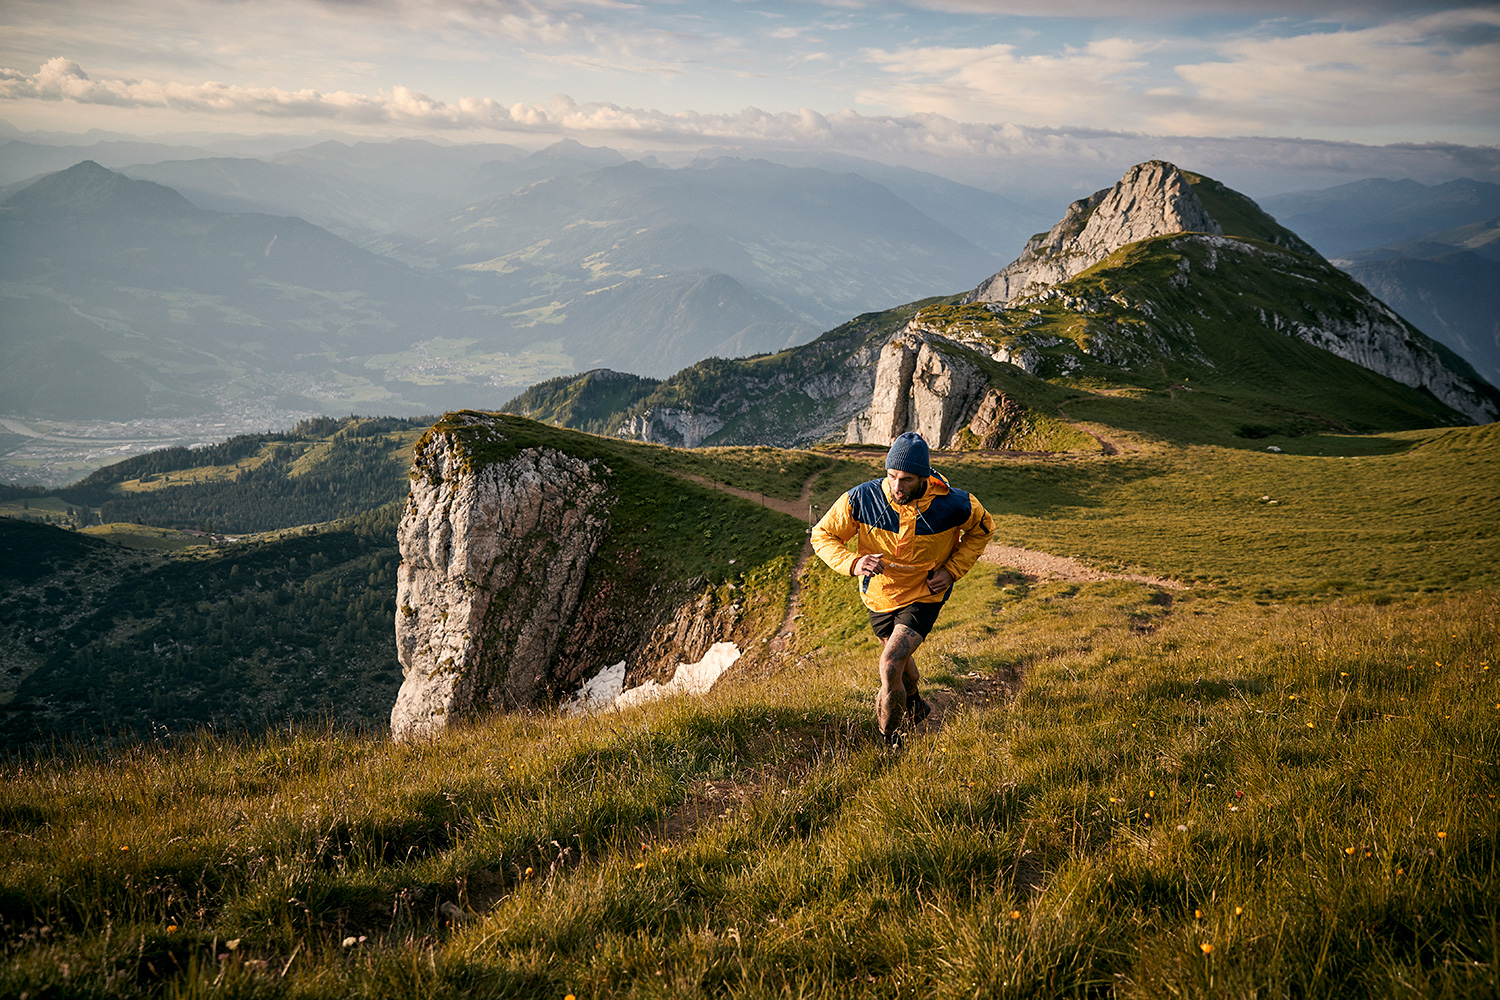 Man trailrunning at the top of the mountain in Rofan